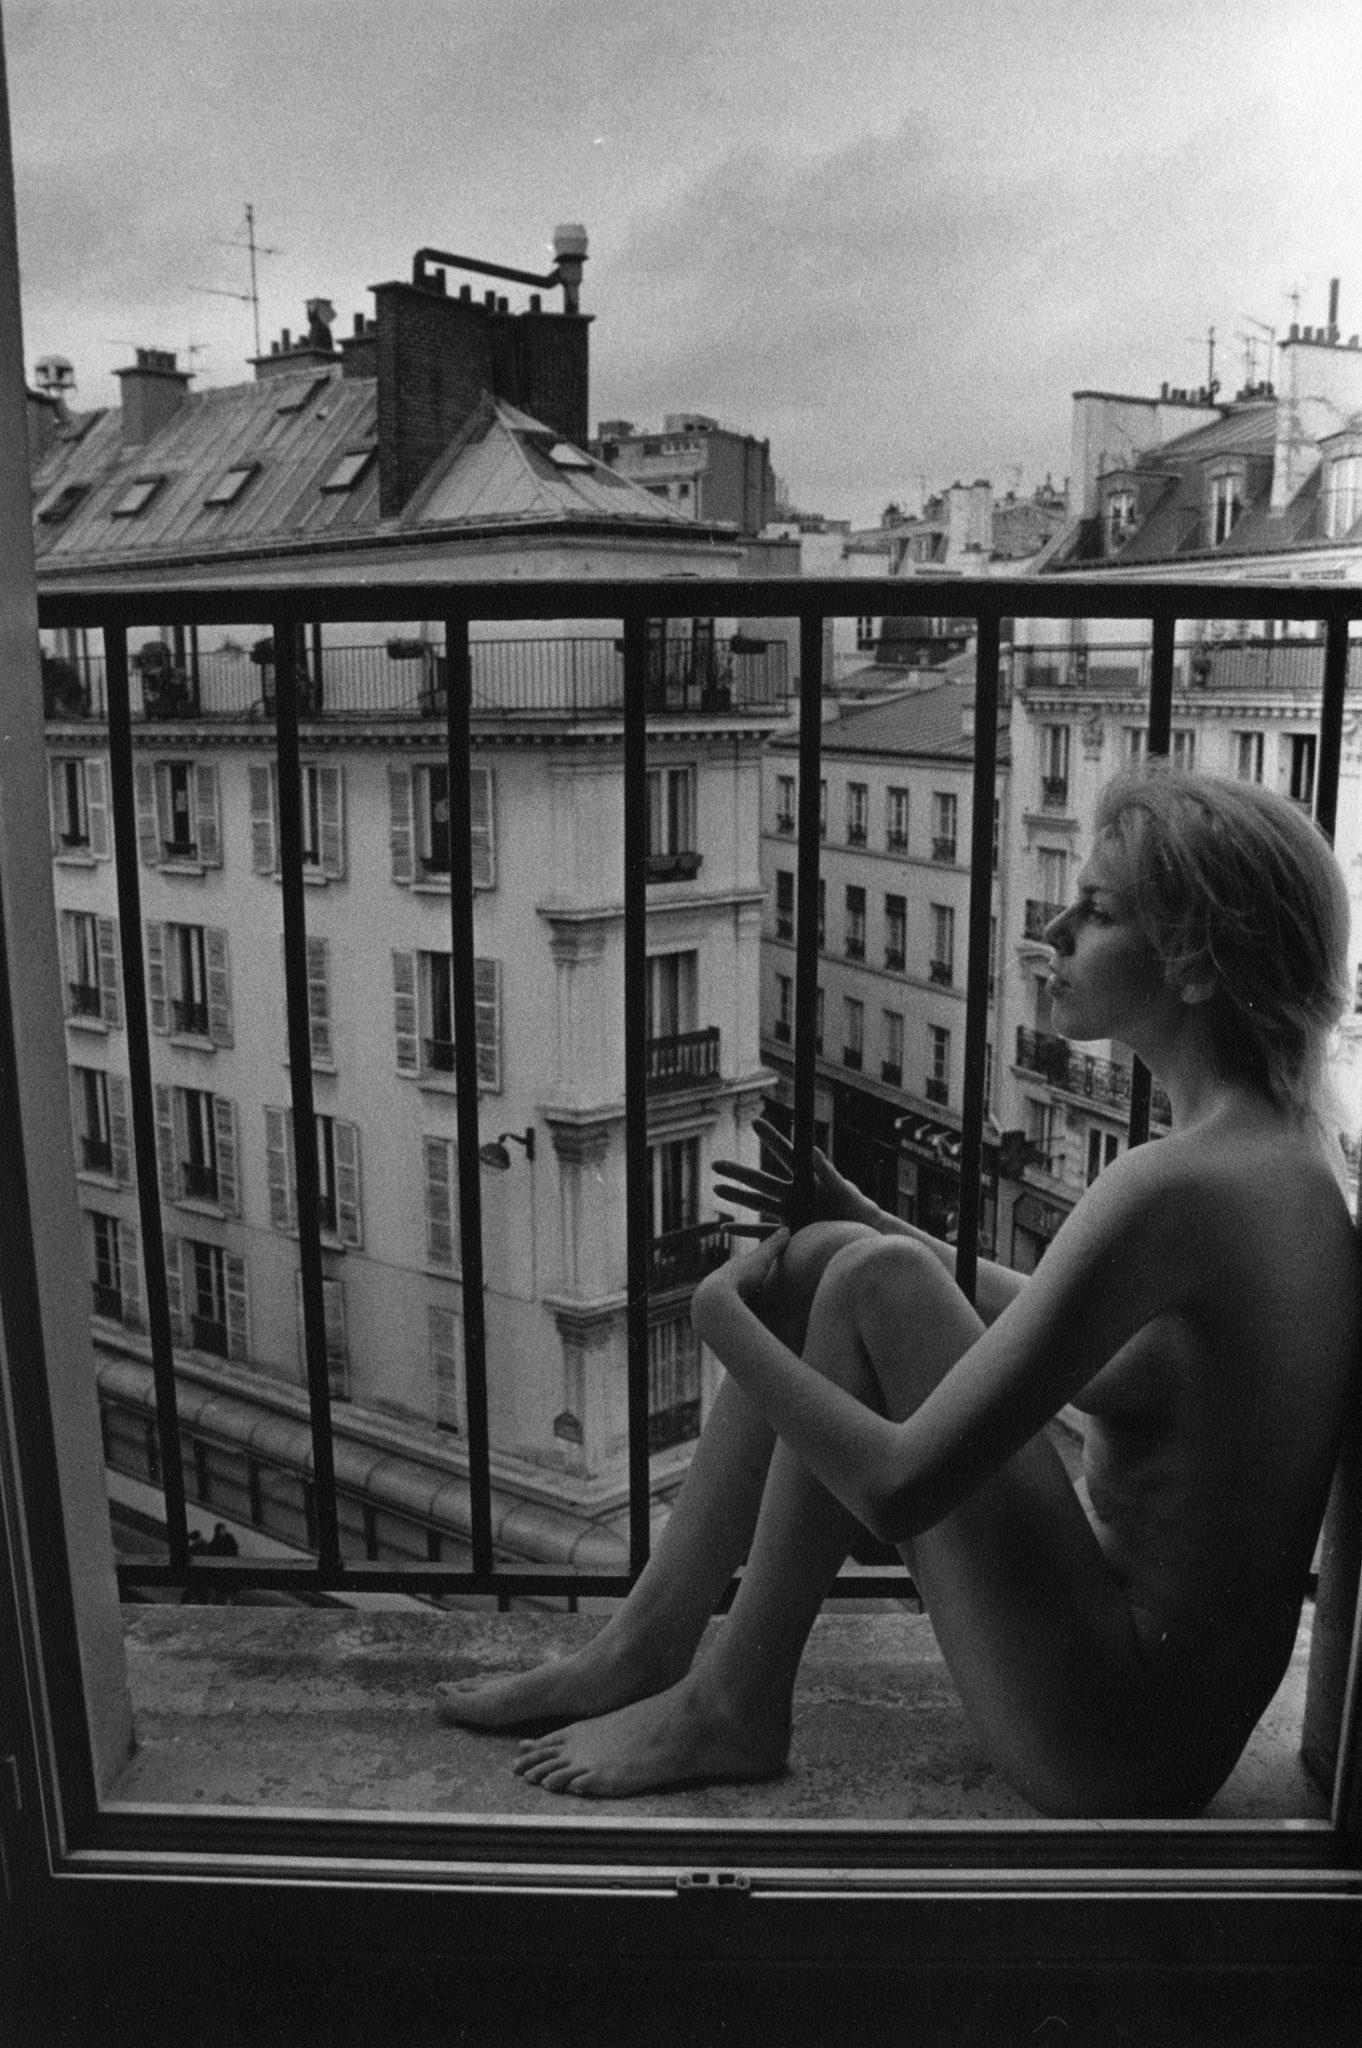 Sergei Borisov, On the balcony. Paris, 2005_Art at 12 Hay Hill